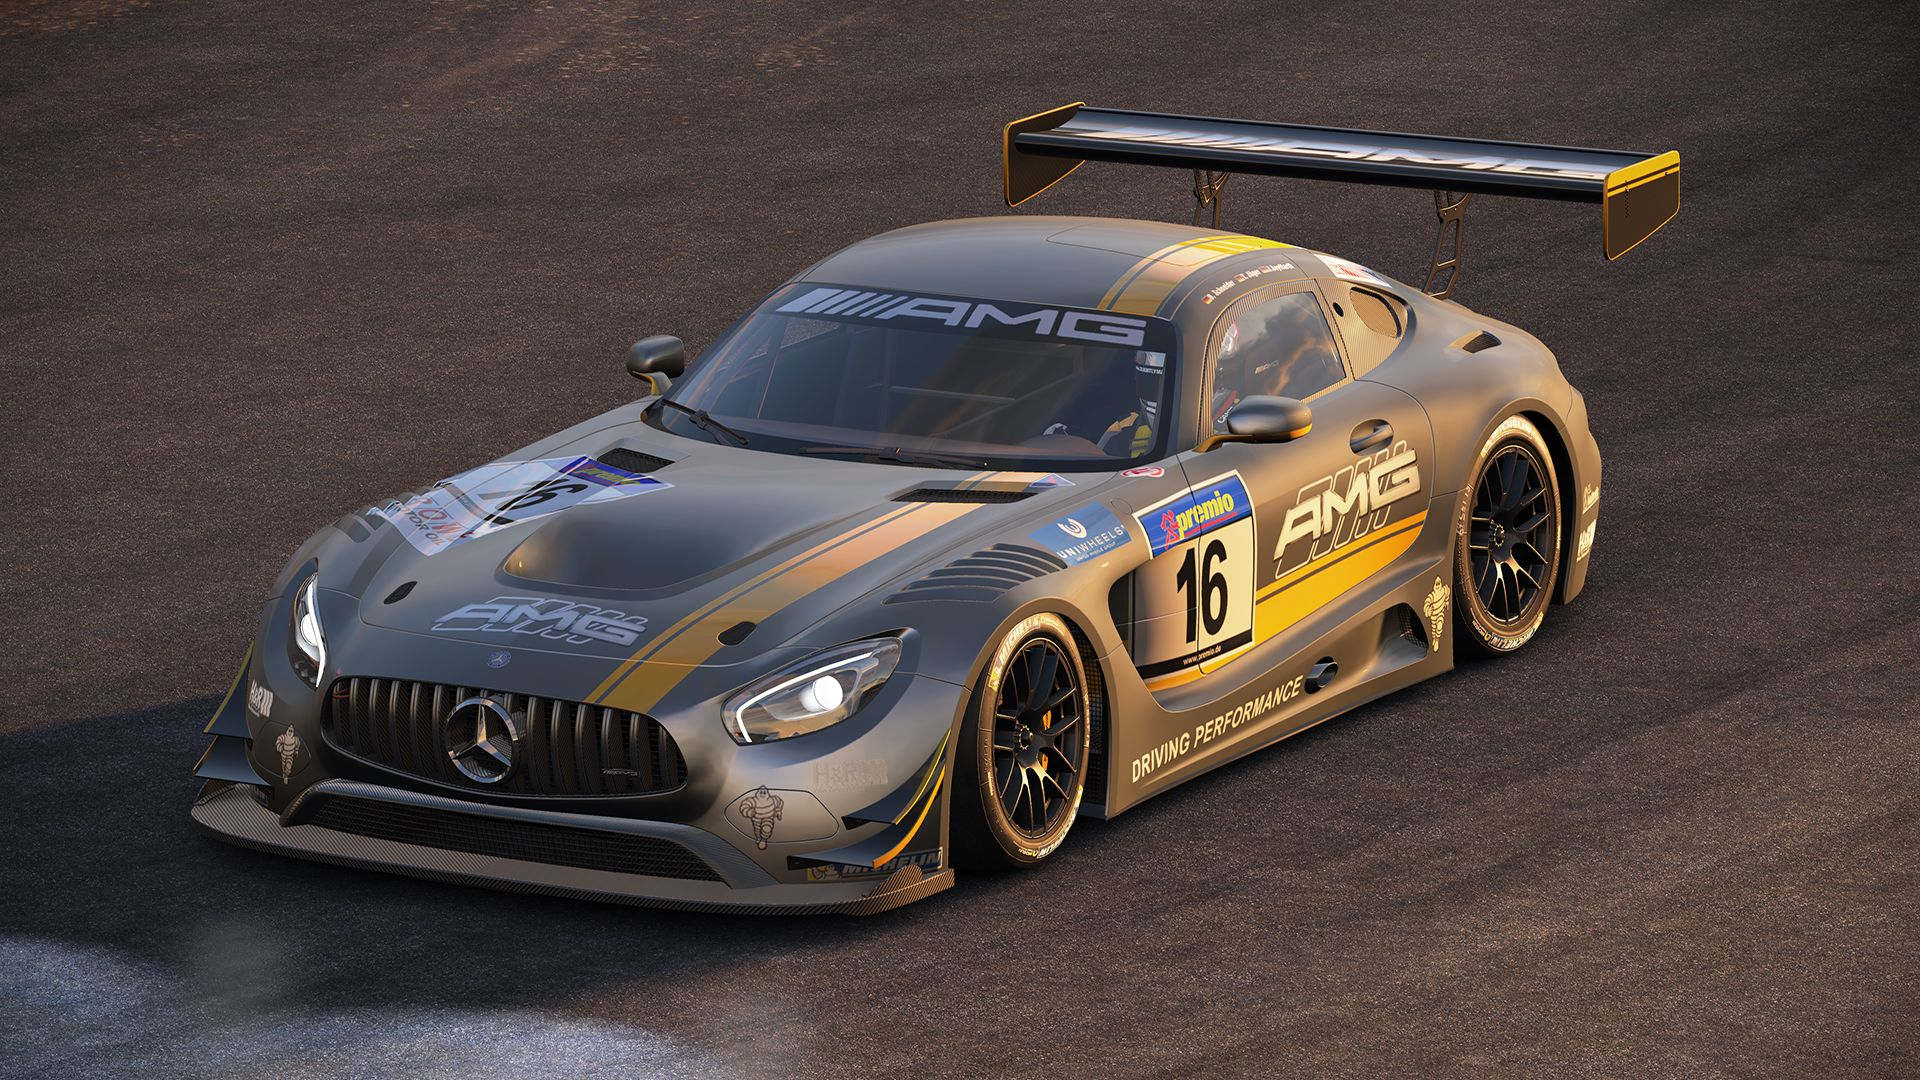 Project cars new mercedes amg gt3 previews virtualr sim racing - Ss144043_1